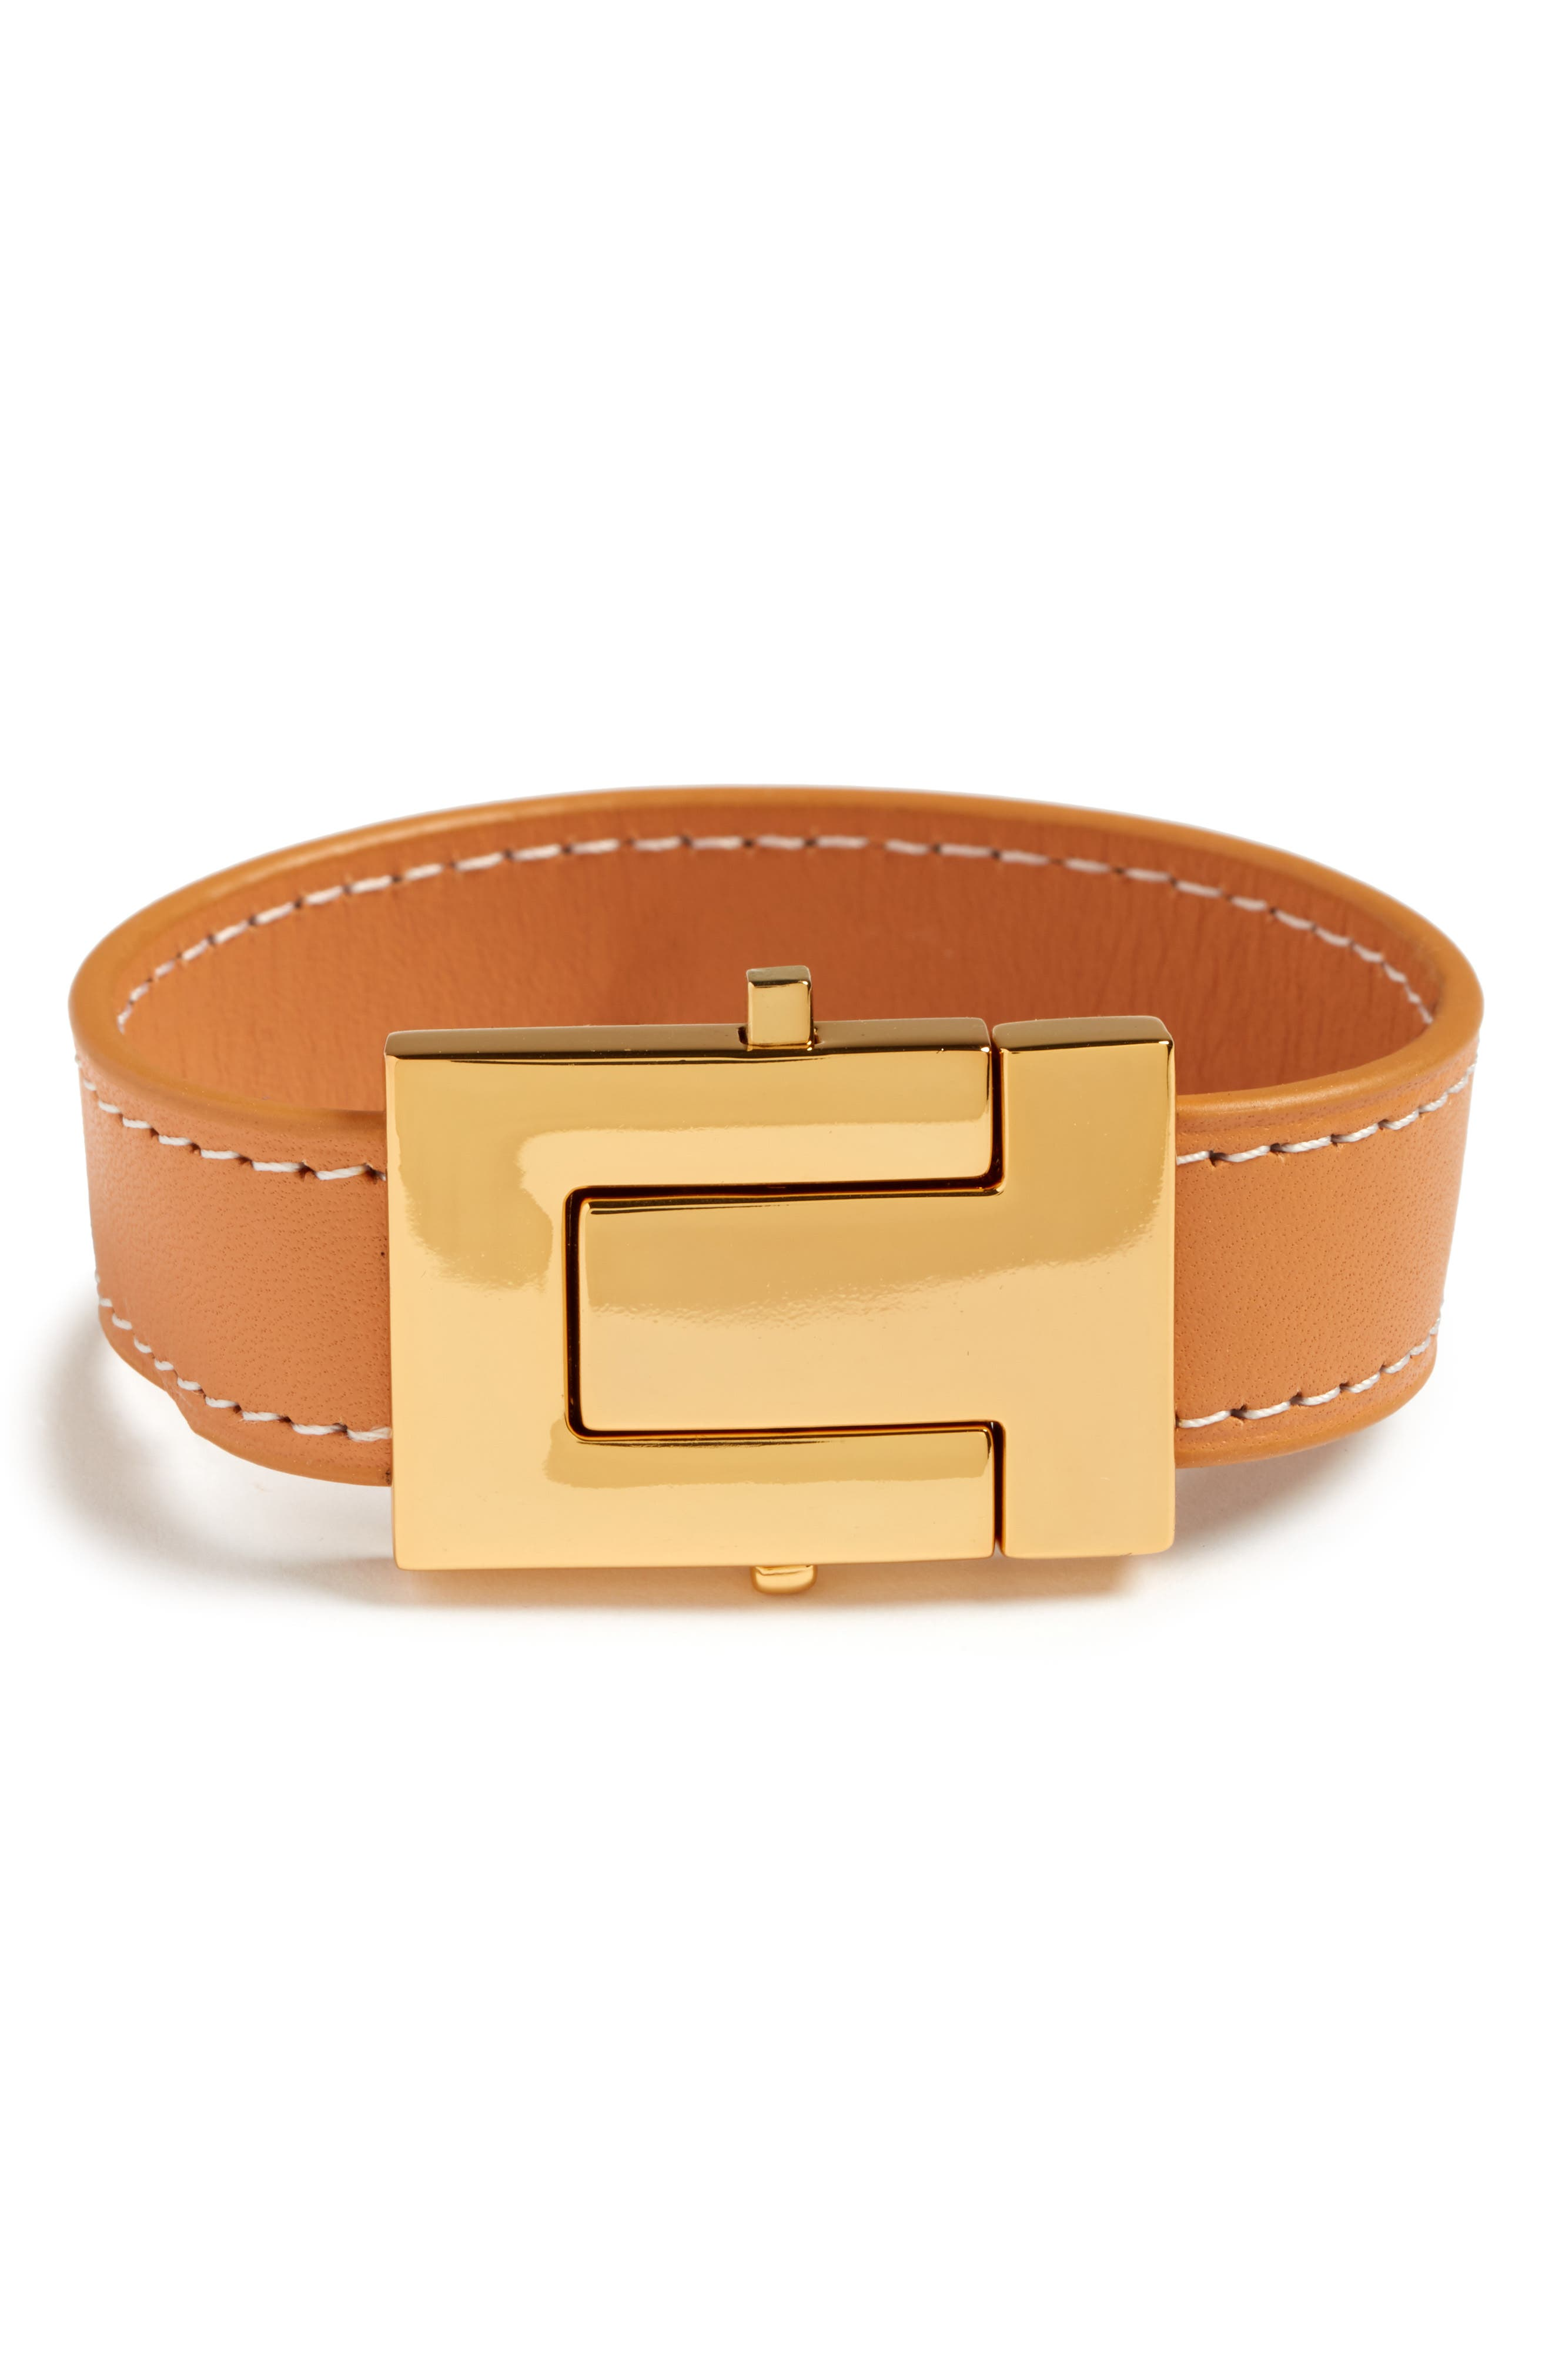 TORY BURCH Leather Bracelet, Main, color, VACHETTA/ TORY GOLD